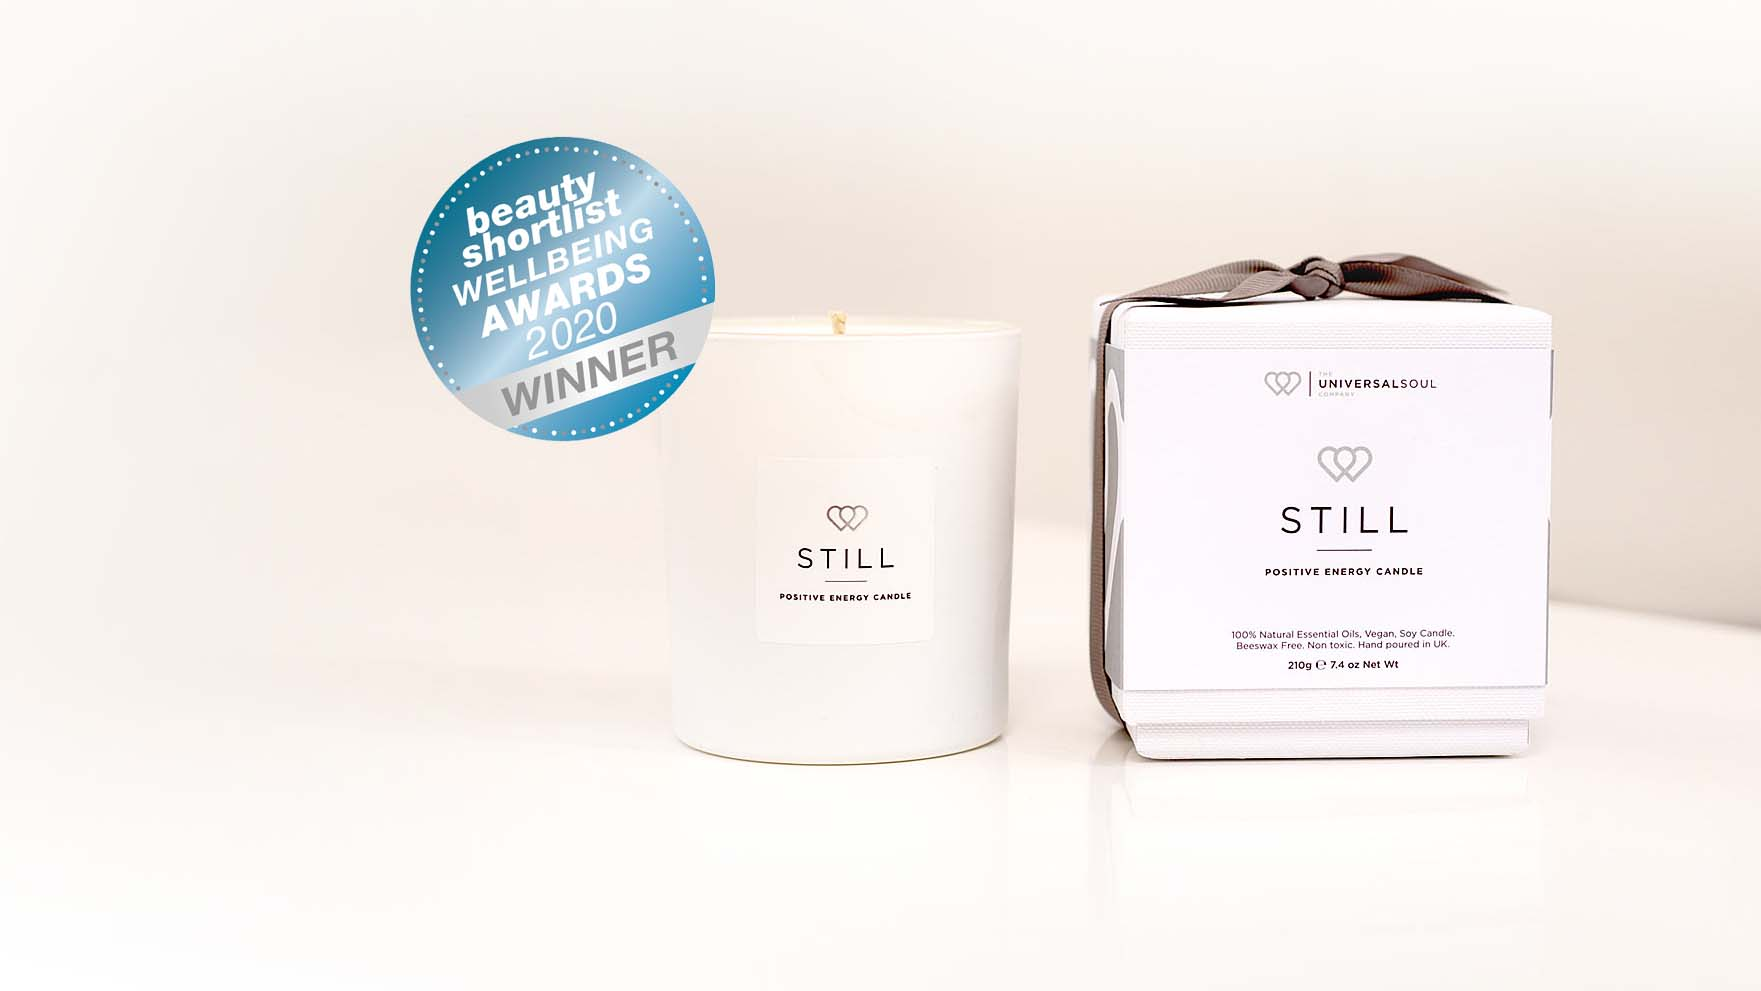 STILL Positive Energy Candle wins the 'Wellbeing Editors' Choice Award 2020′